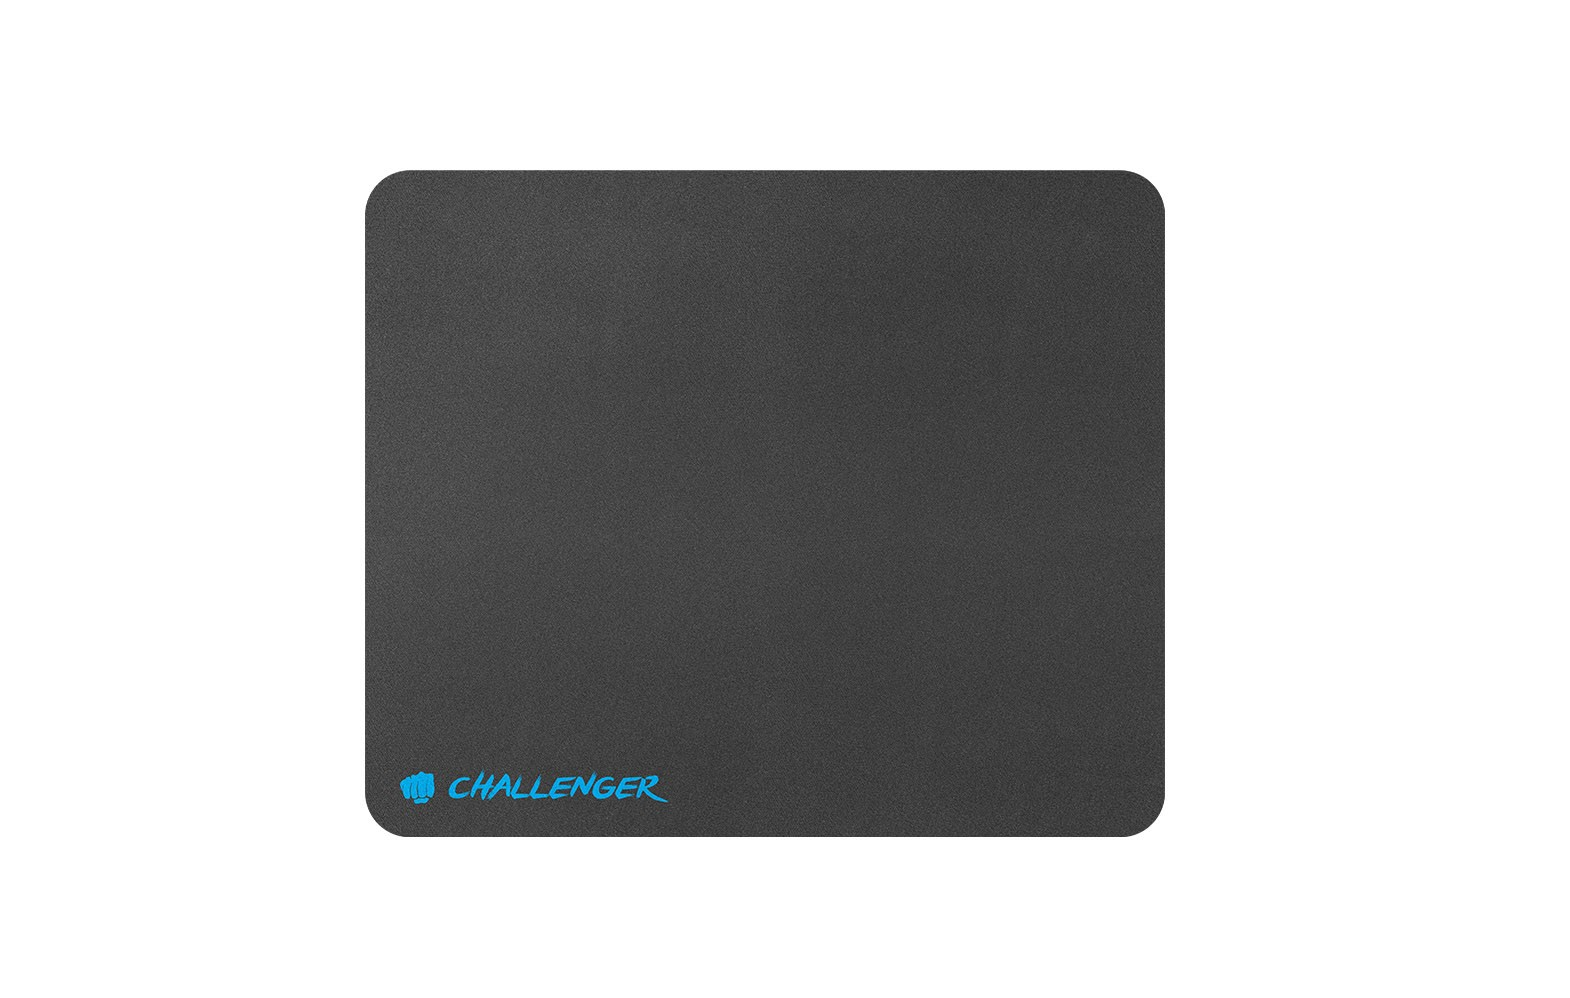 FURY CHALLENGER M GAMING MOUSE PAD